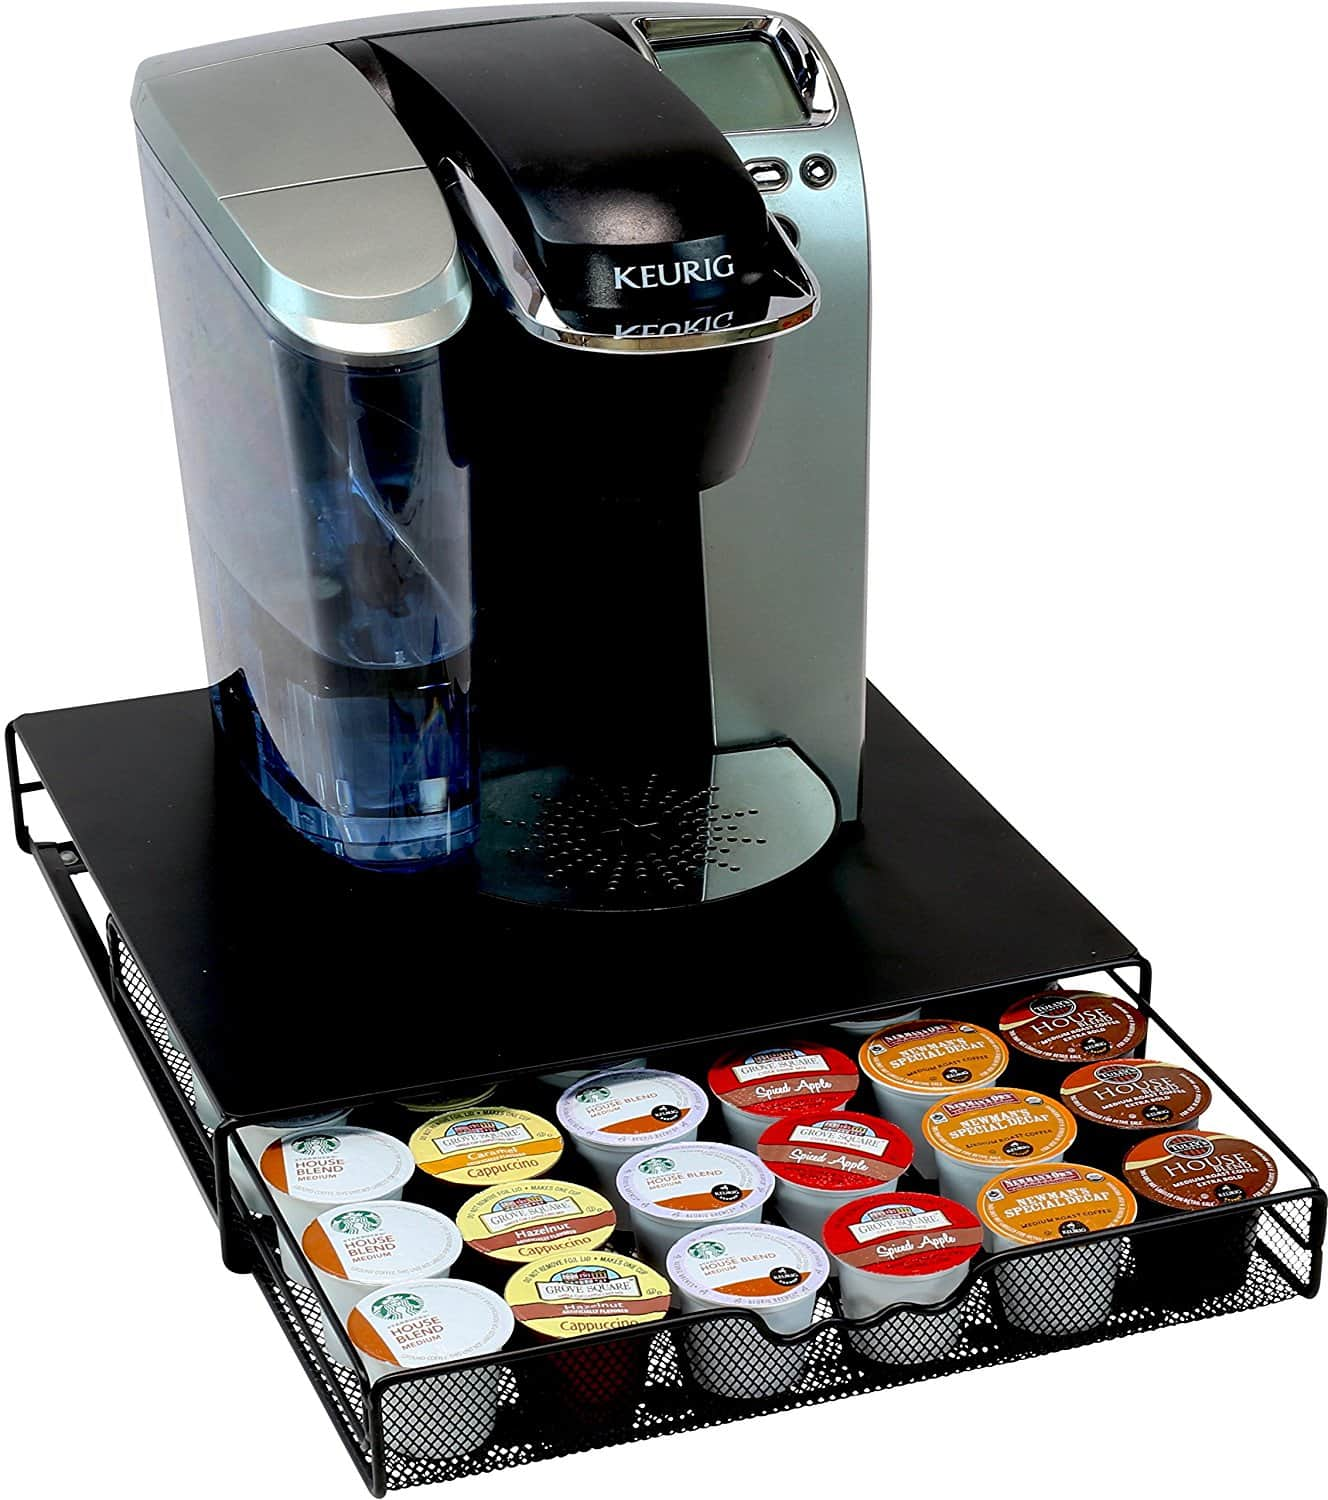 A keurig coffee machine sitting on top of a black drawer with Kcups inside